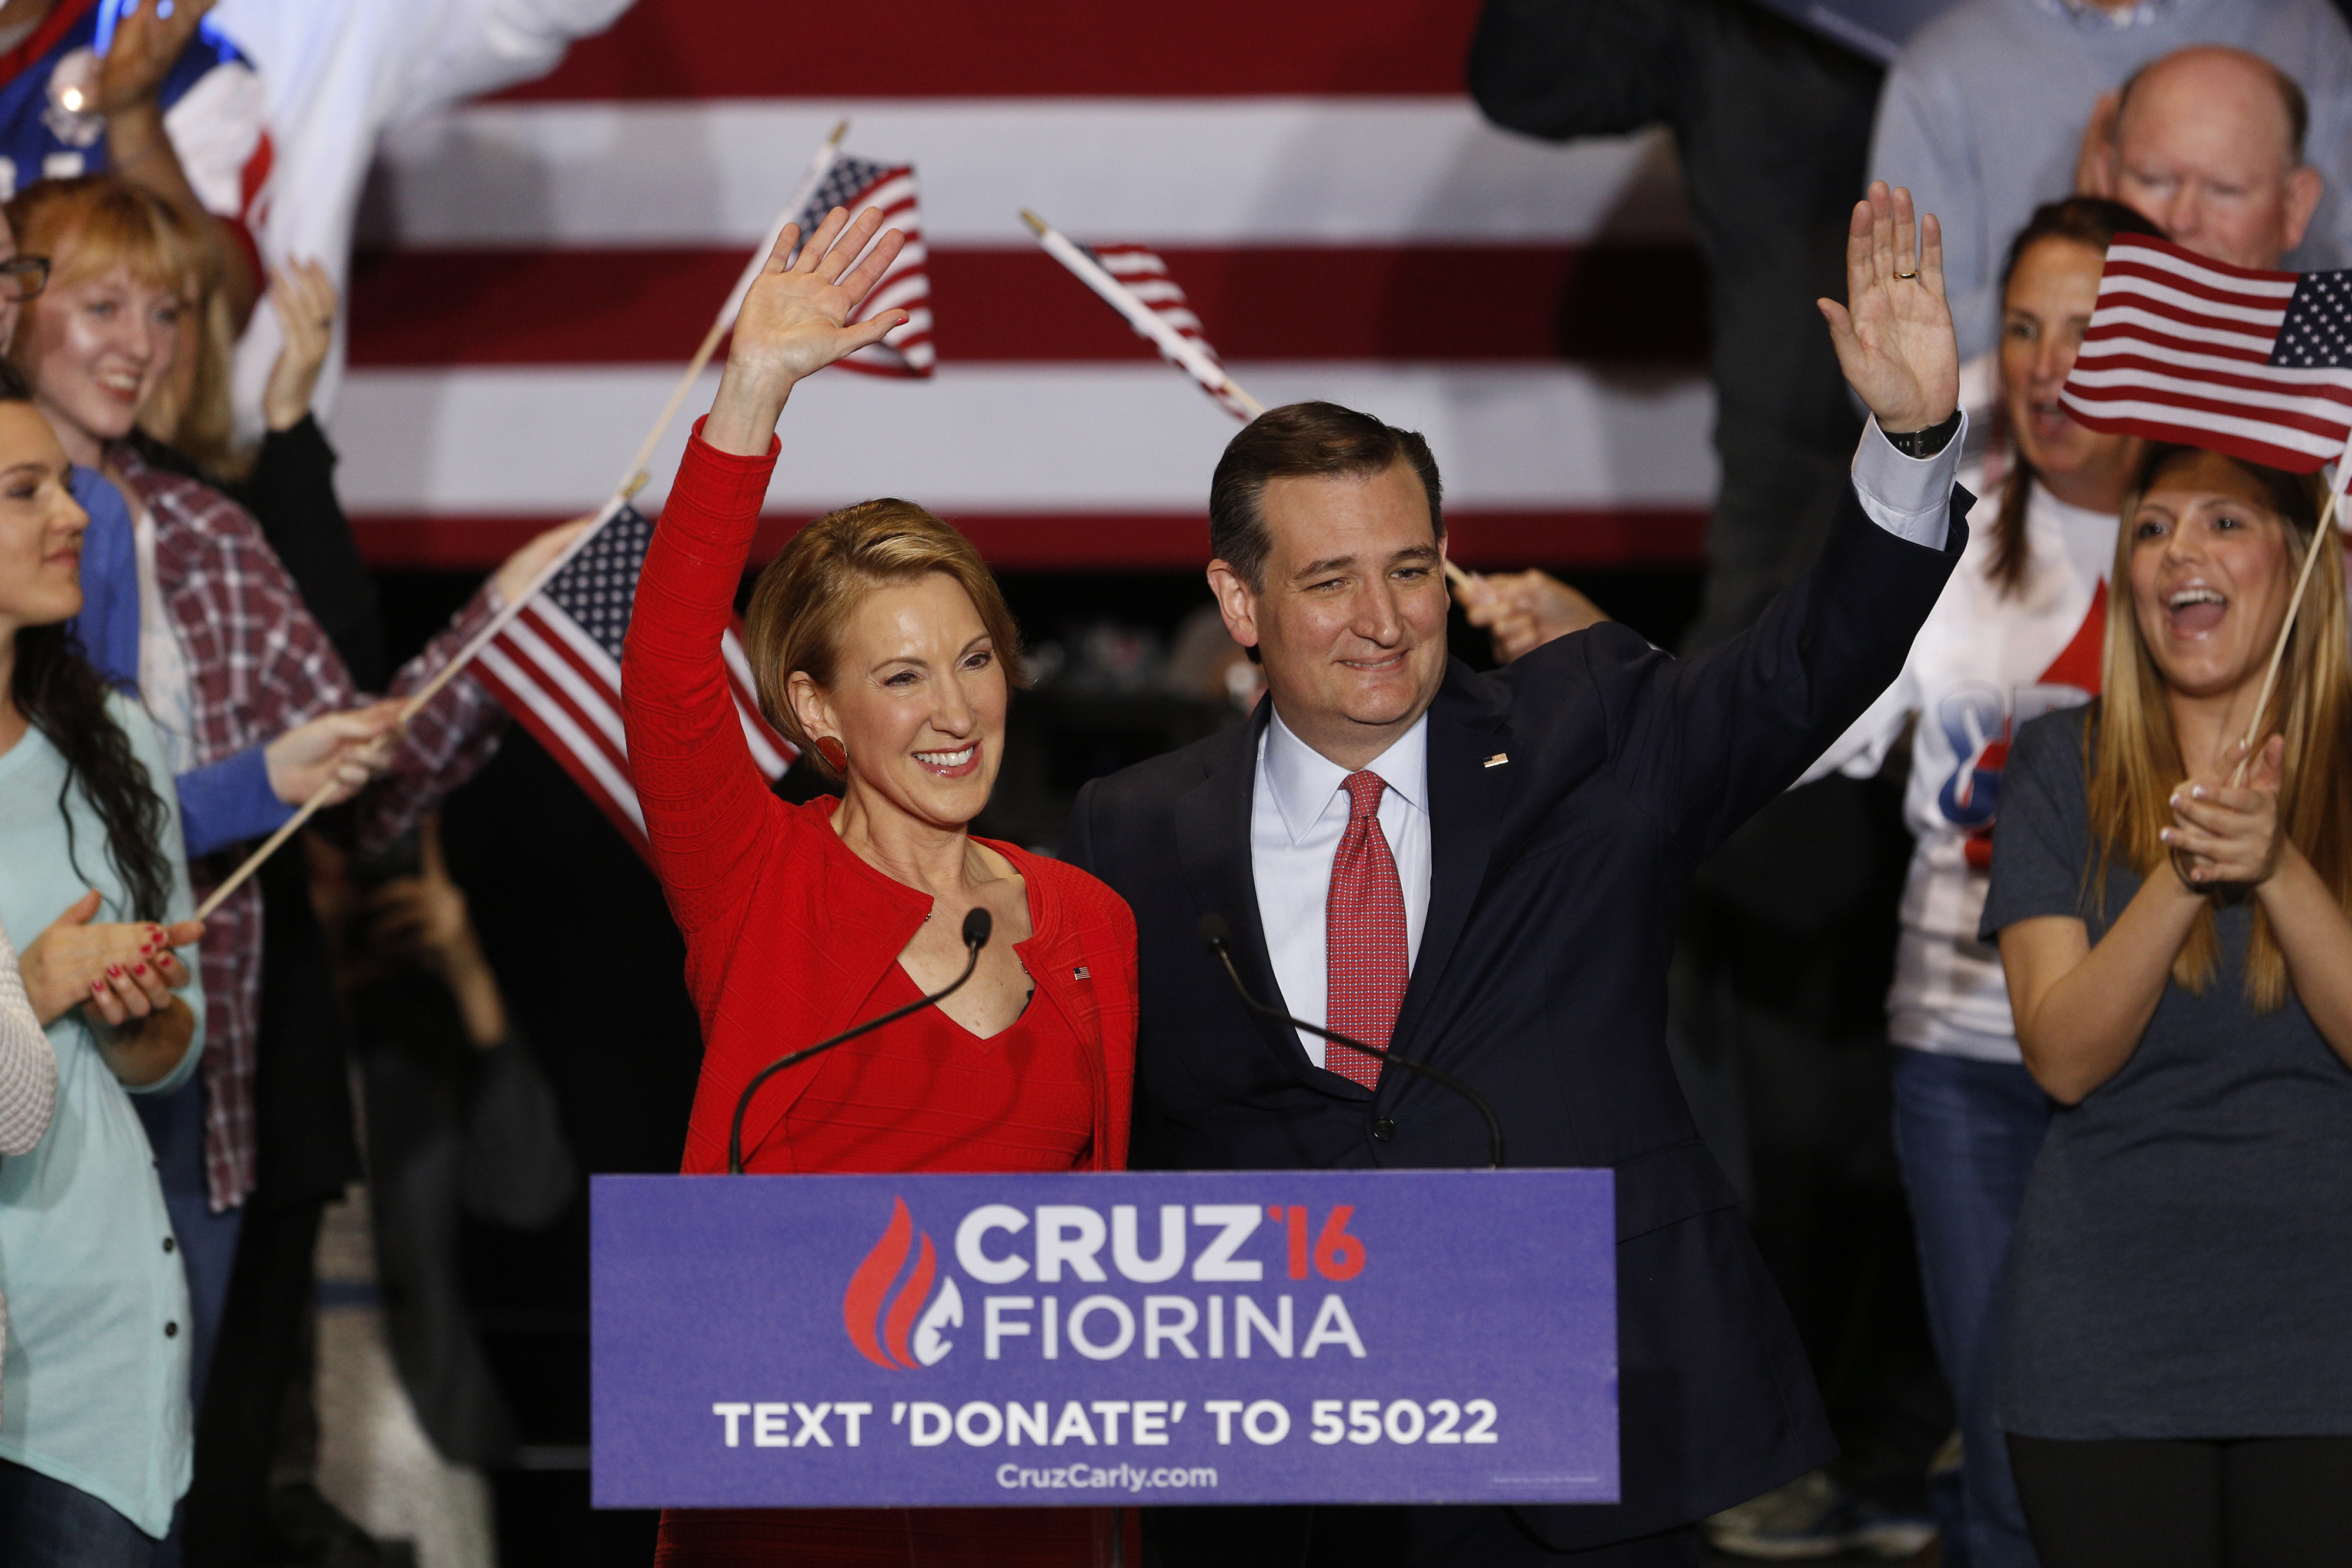 Carly Fiorina, former chairman and chief executive officer of Hewlett-Packard, left, and Senator Ted Cruz, a Republican from Texas and 2016 presidential candidate, wave during a campaign rally in Indianapolis on April 27, 2016